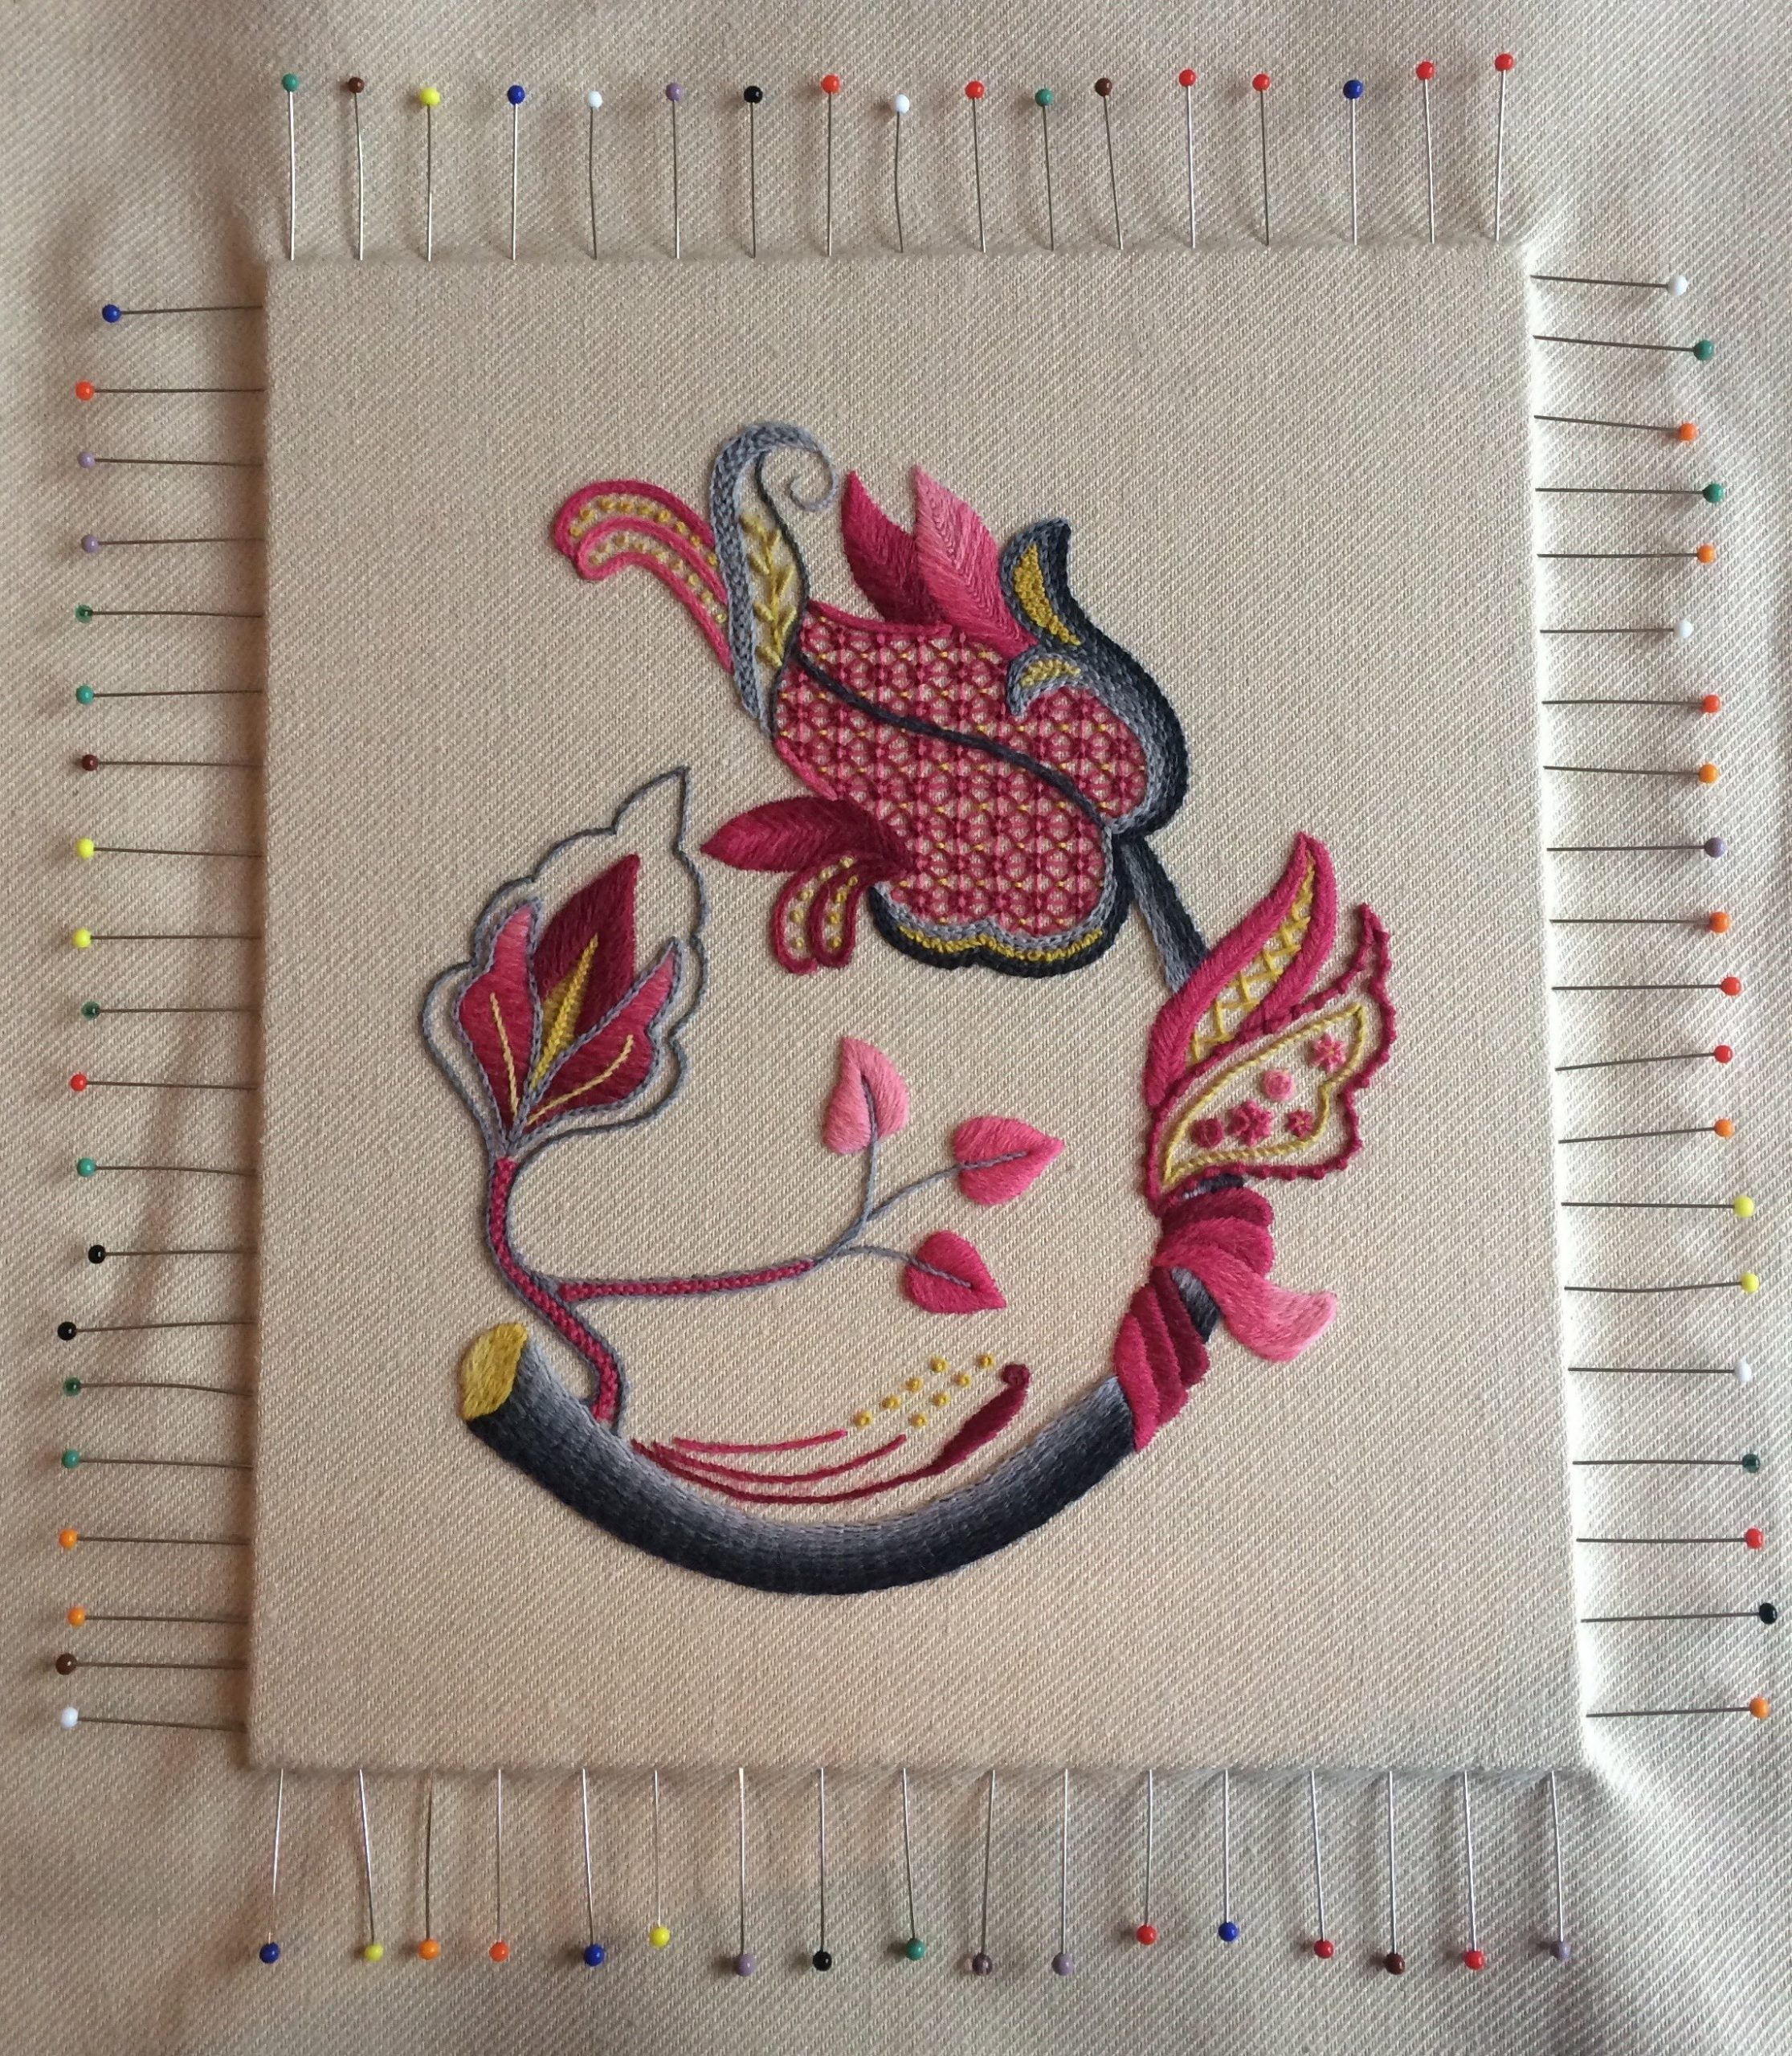 How To Mount Your Embroidery Ready For Framing – Part 1